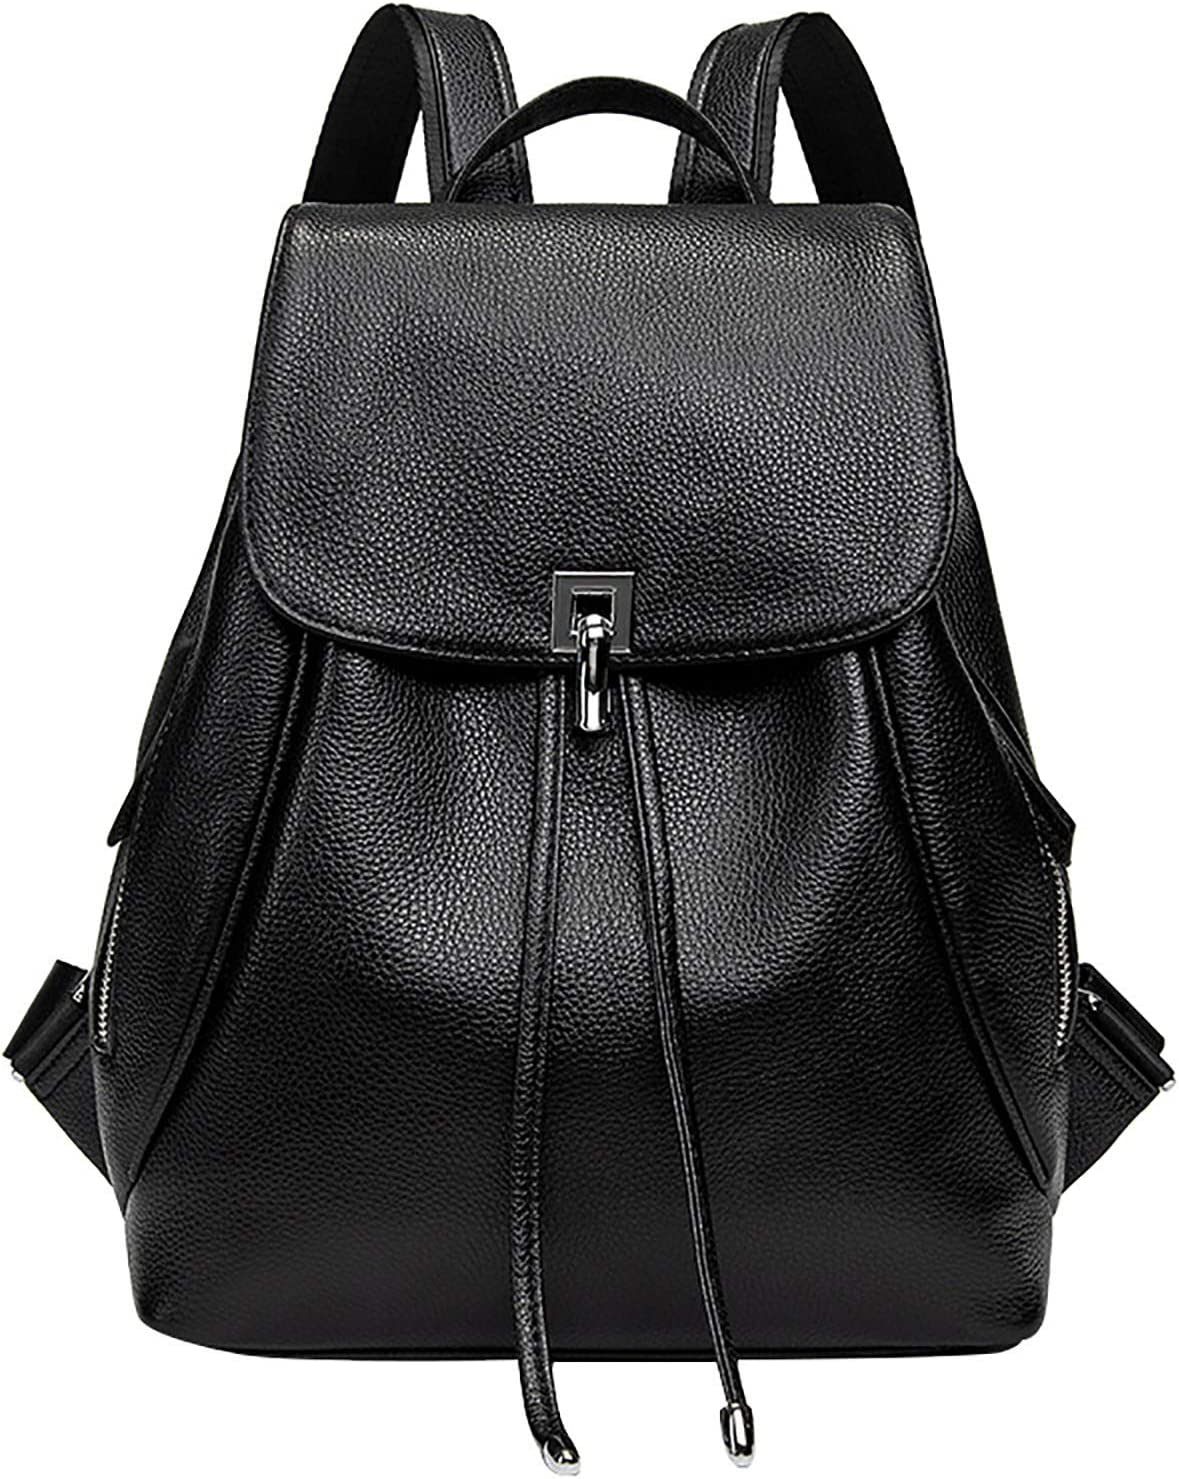 Backpack Purse for Women Fashion,Simple Bucket Max 70% OFF Style blac Fashion Bag